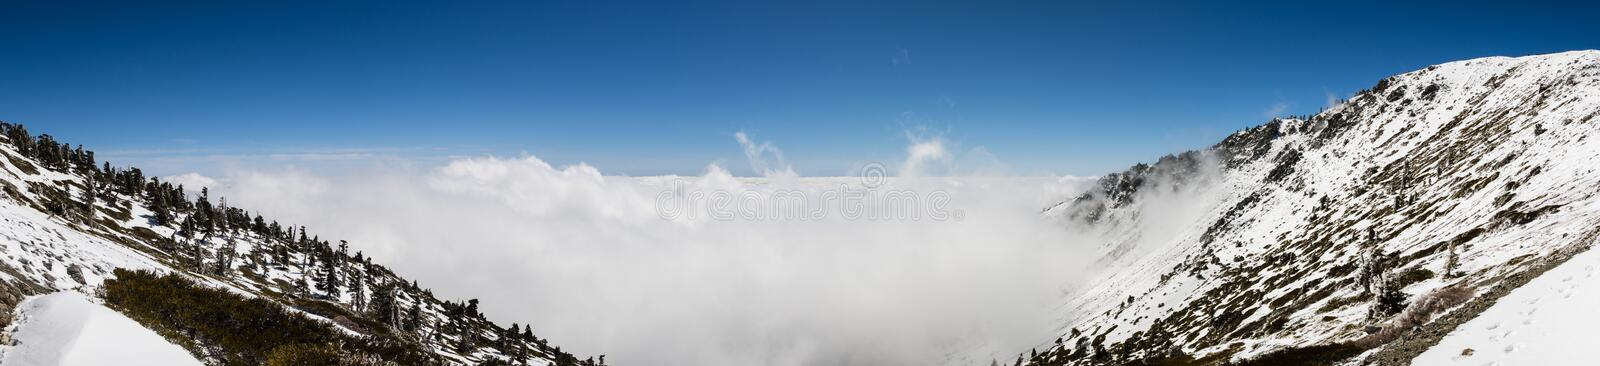 Sunny winter day with fallen snow and a sea of white clouds on the trail to Mt San Antonio (Mt Baldy), Los Angeles county, royalty free stock image